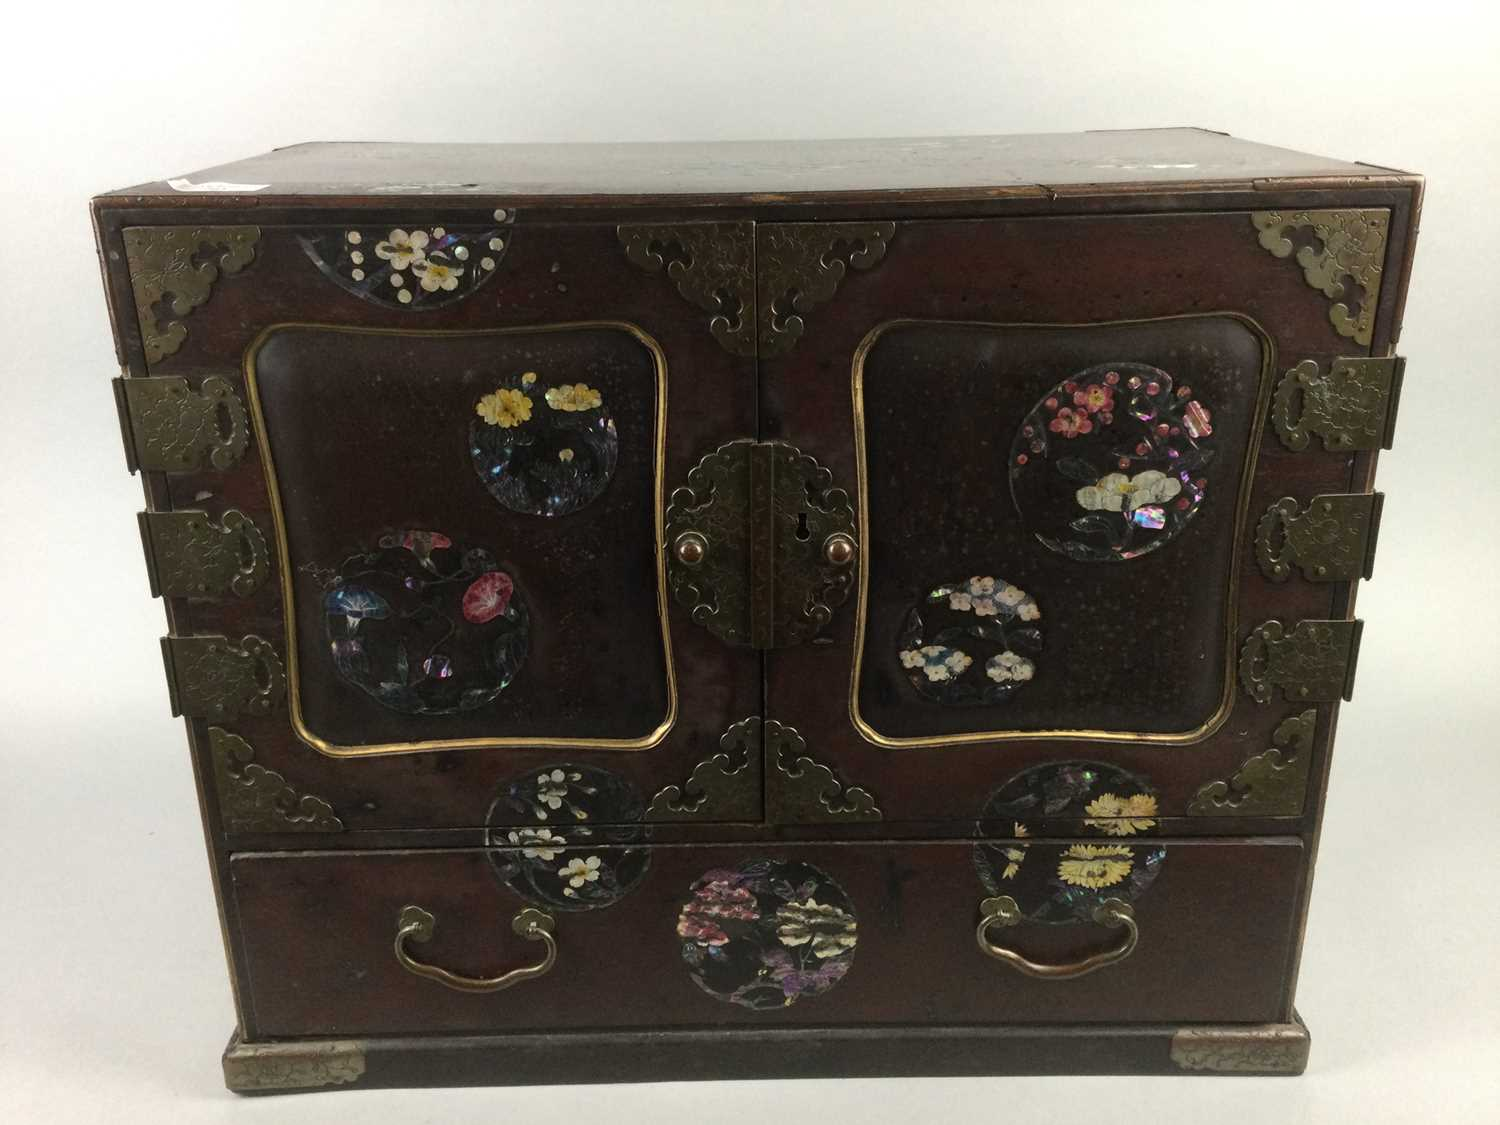 Lot 705 - AN EARLY 20TH CENTURY CHINESE LACQUERED TABLE CABINET